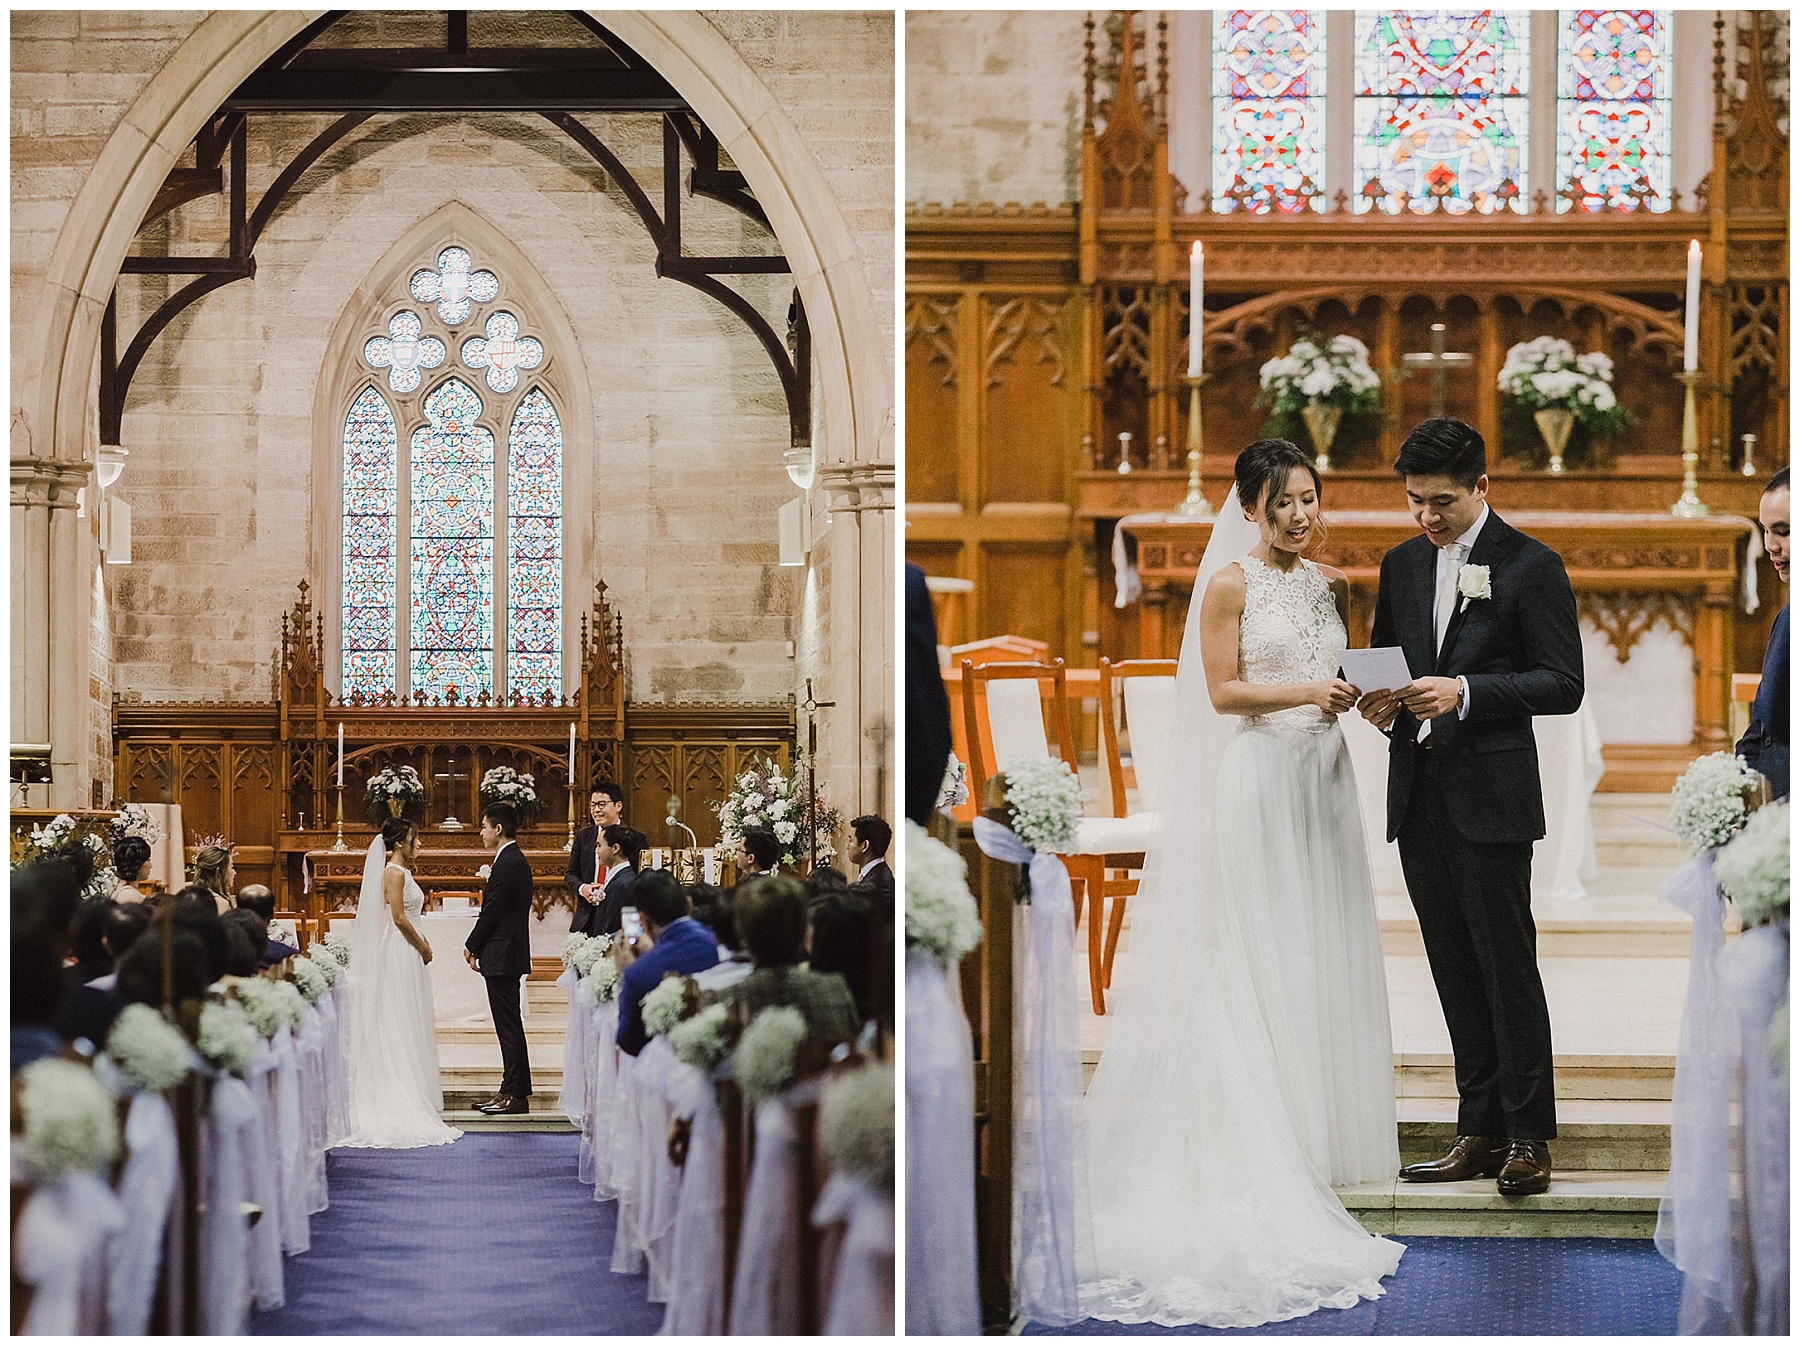 Sydney Bride and Groom at their ceremony